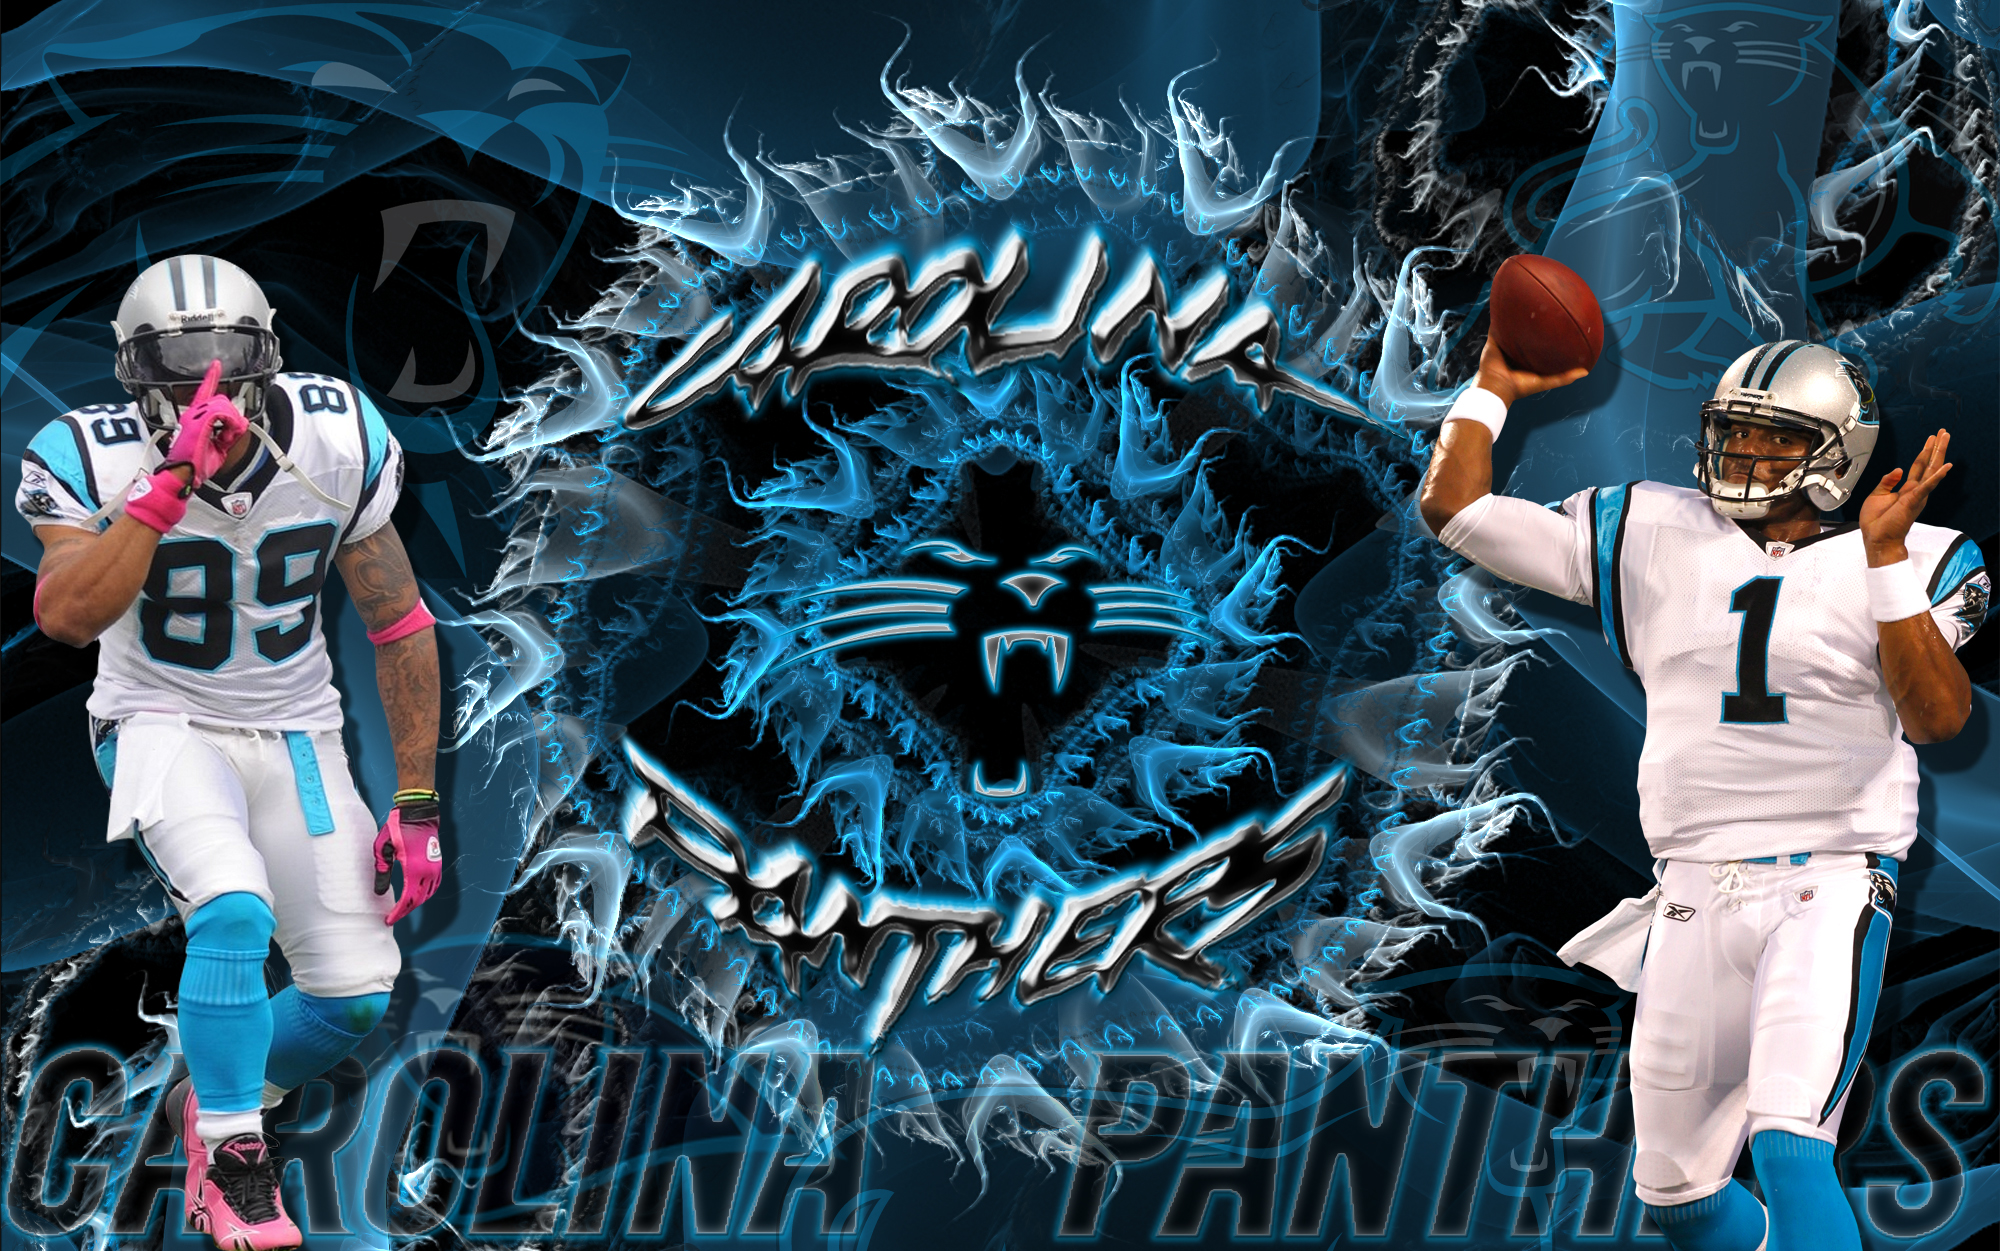 Carolina Panthers Explosion Wallpaper for Phones and Tablets 2000x1251